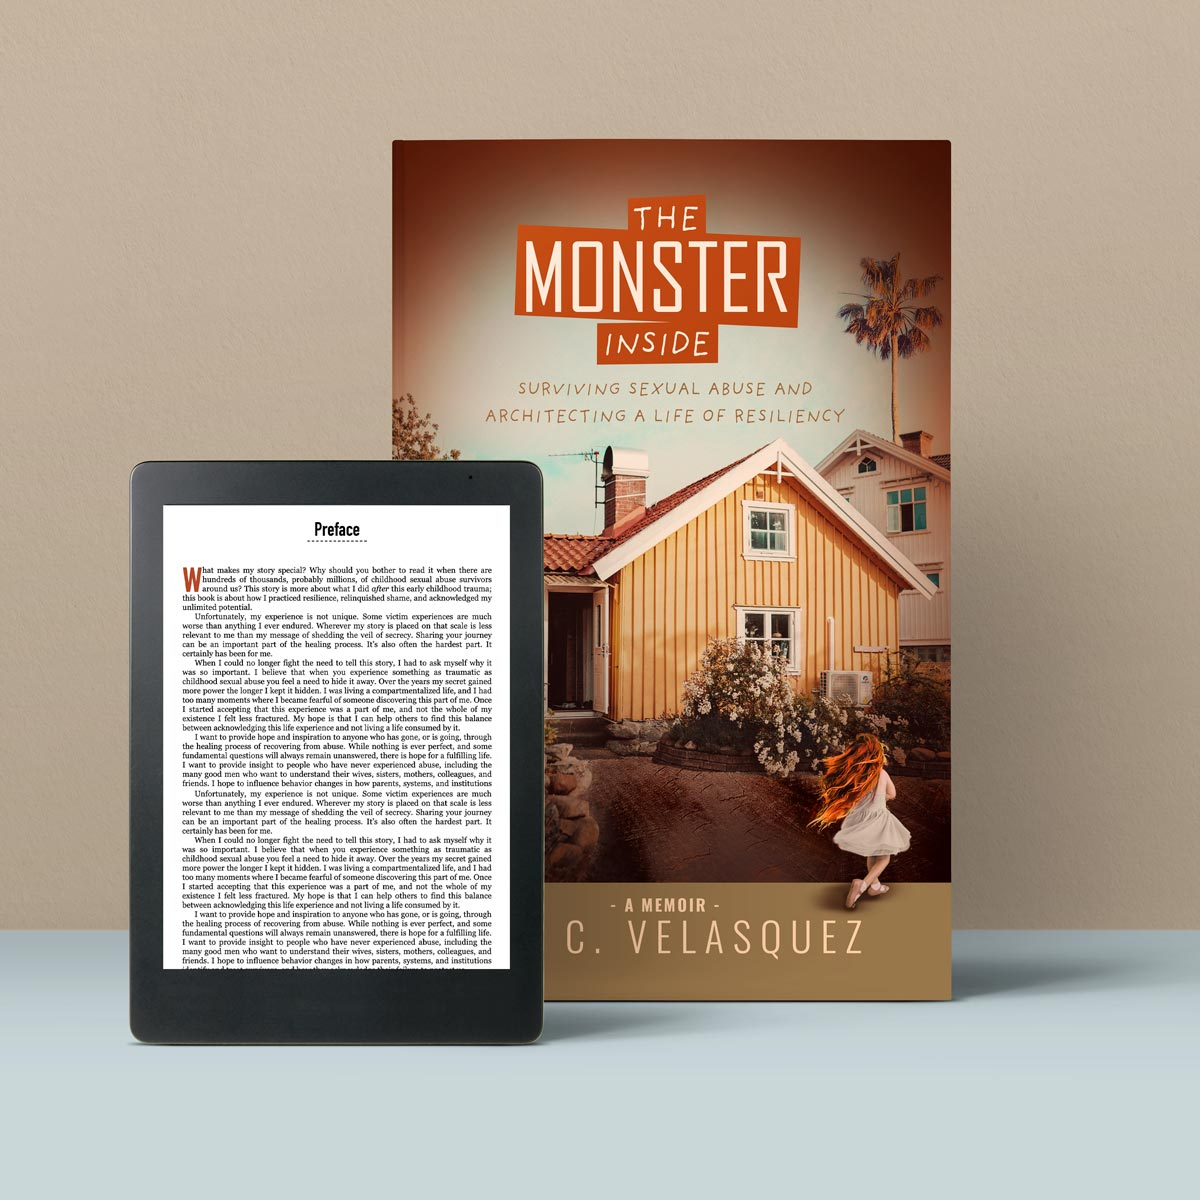 The Monster Inside Book Cover and Kindle Image